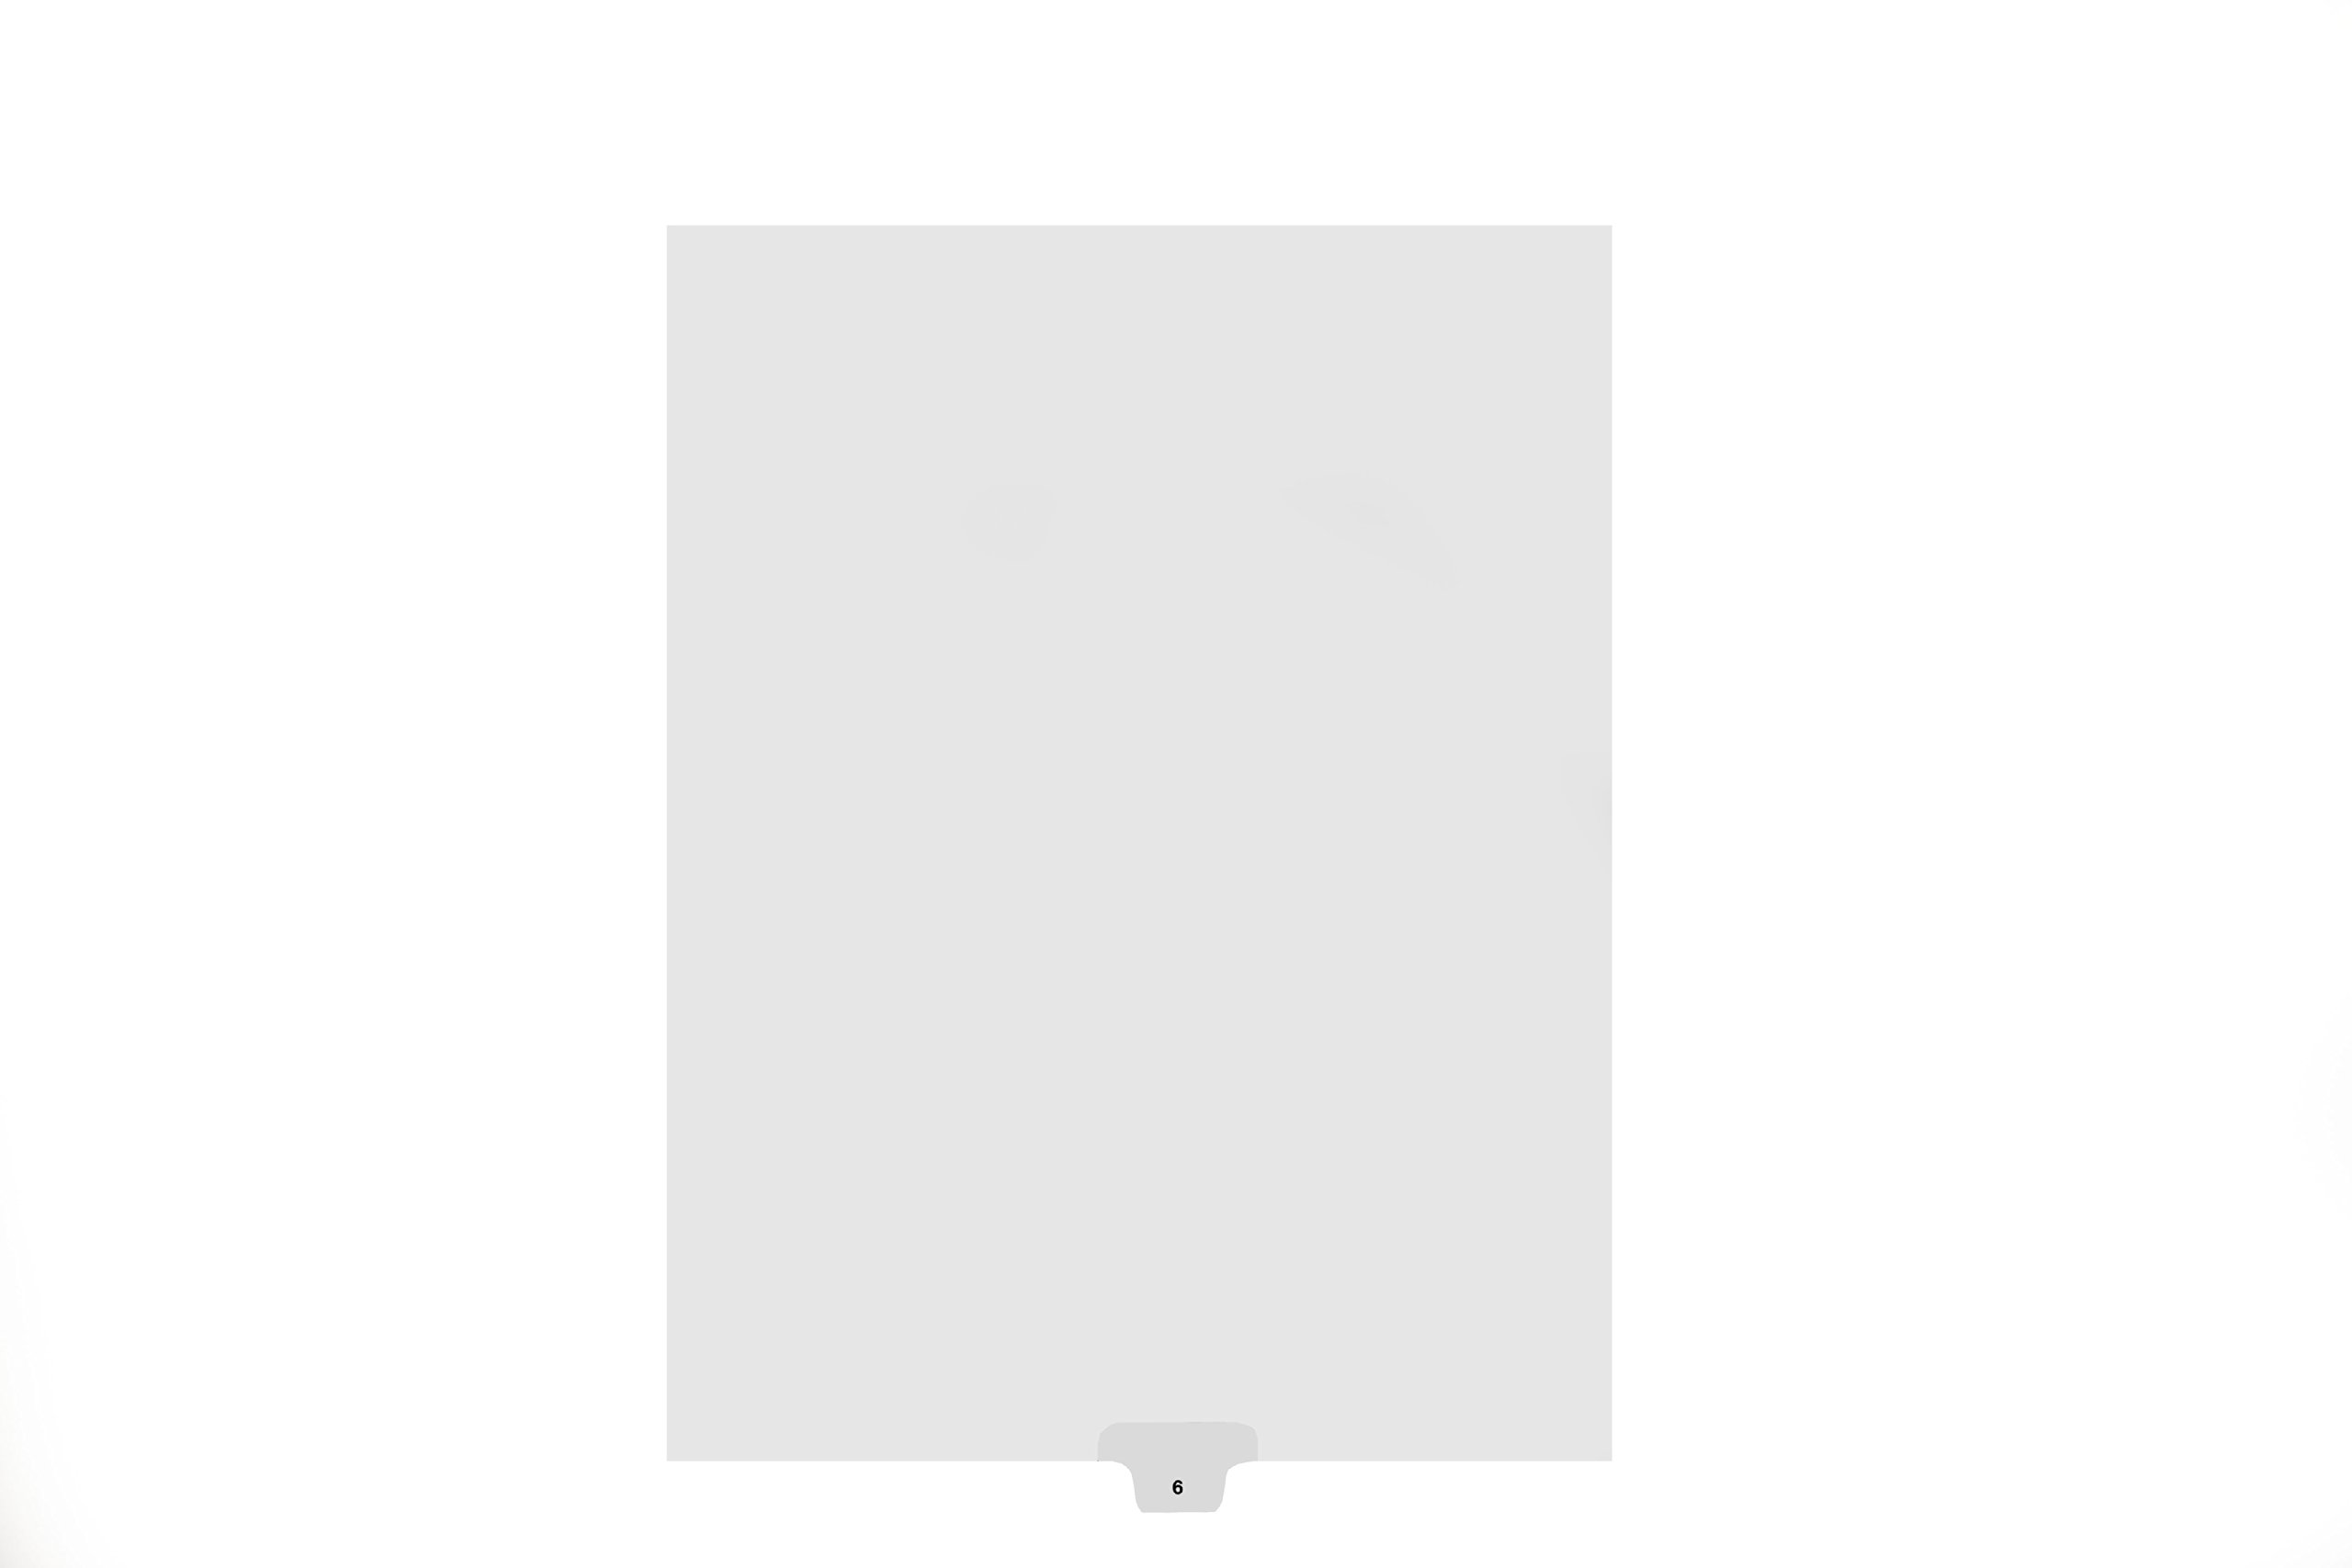 Kleer-Fax Letter-Size Individual Number Index Dividers, Bottom Tab, 1/10th Cut, 25 Sheets/Pack, White, Number 6 (84319)